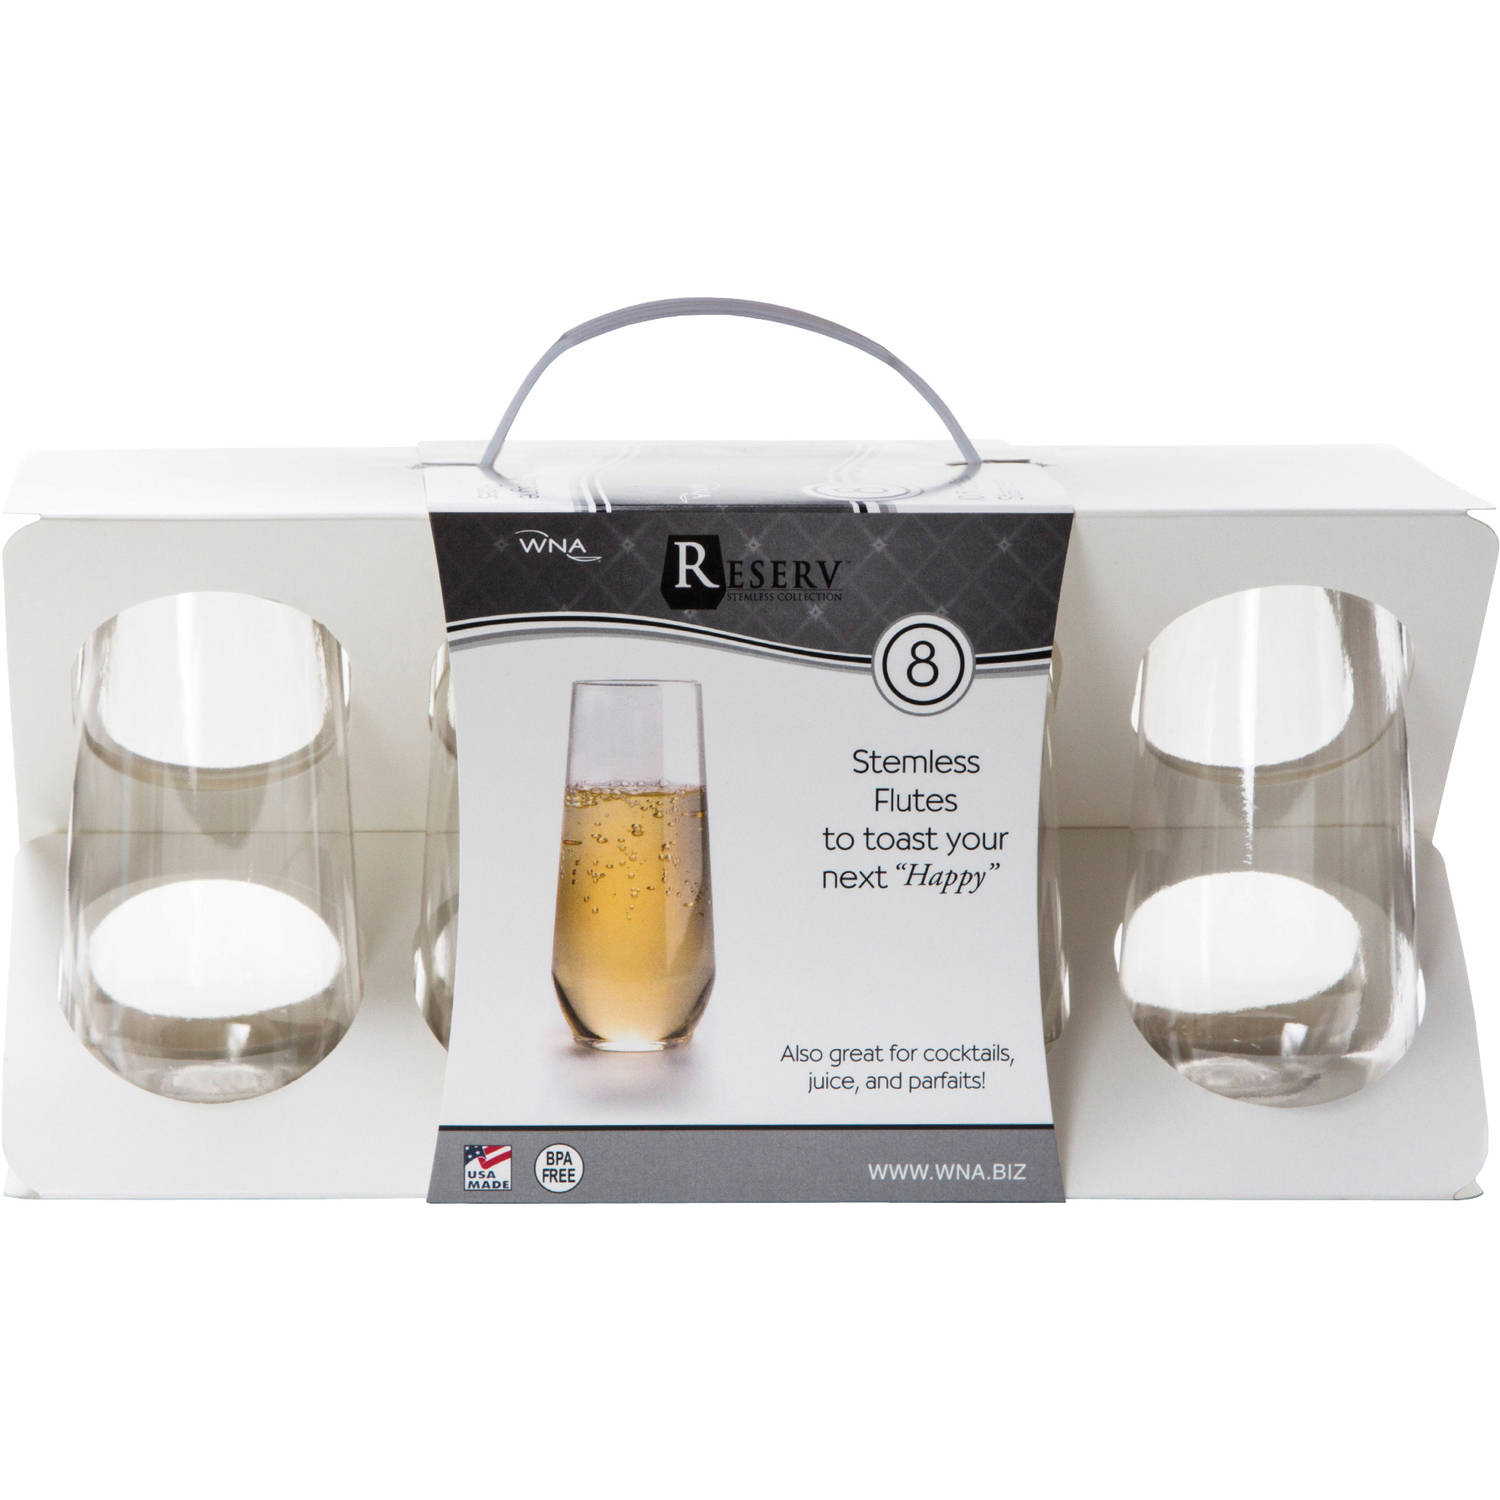 WNA Reserv Stemless Flutes Champagne Glasses, 8 count